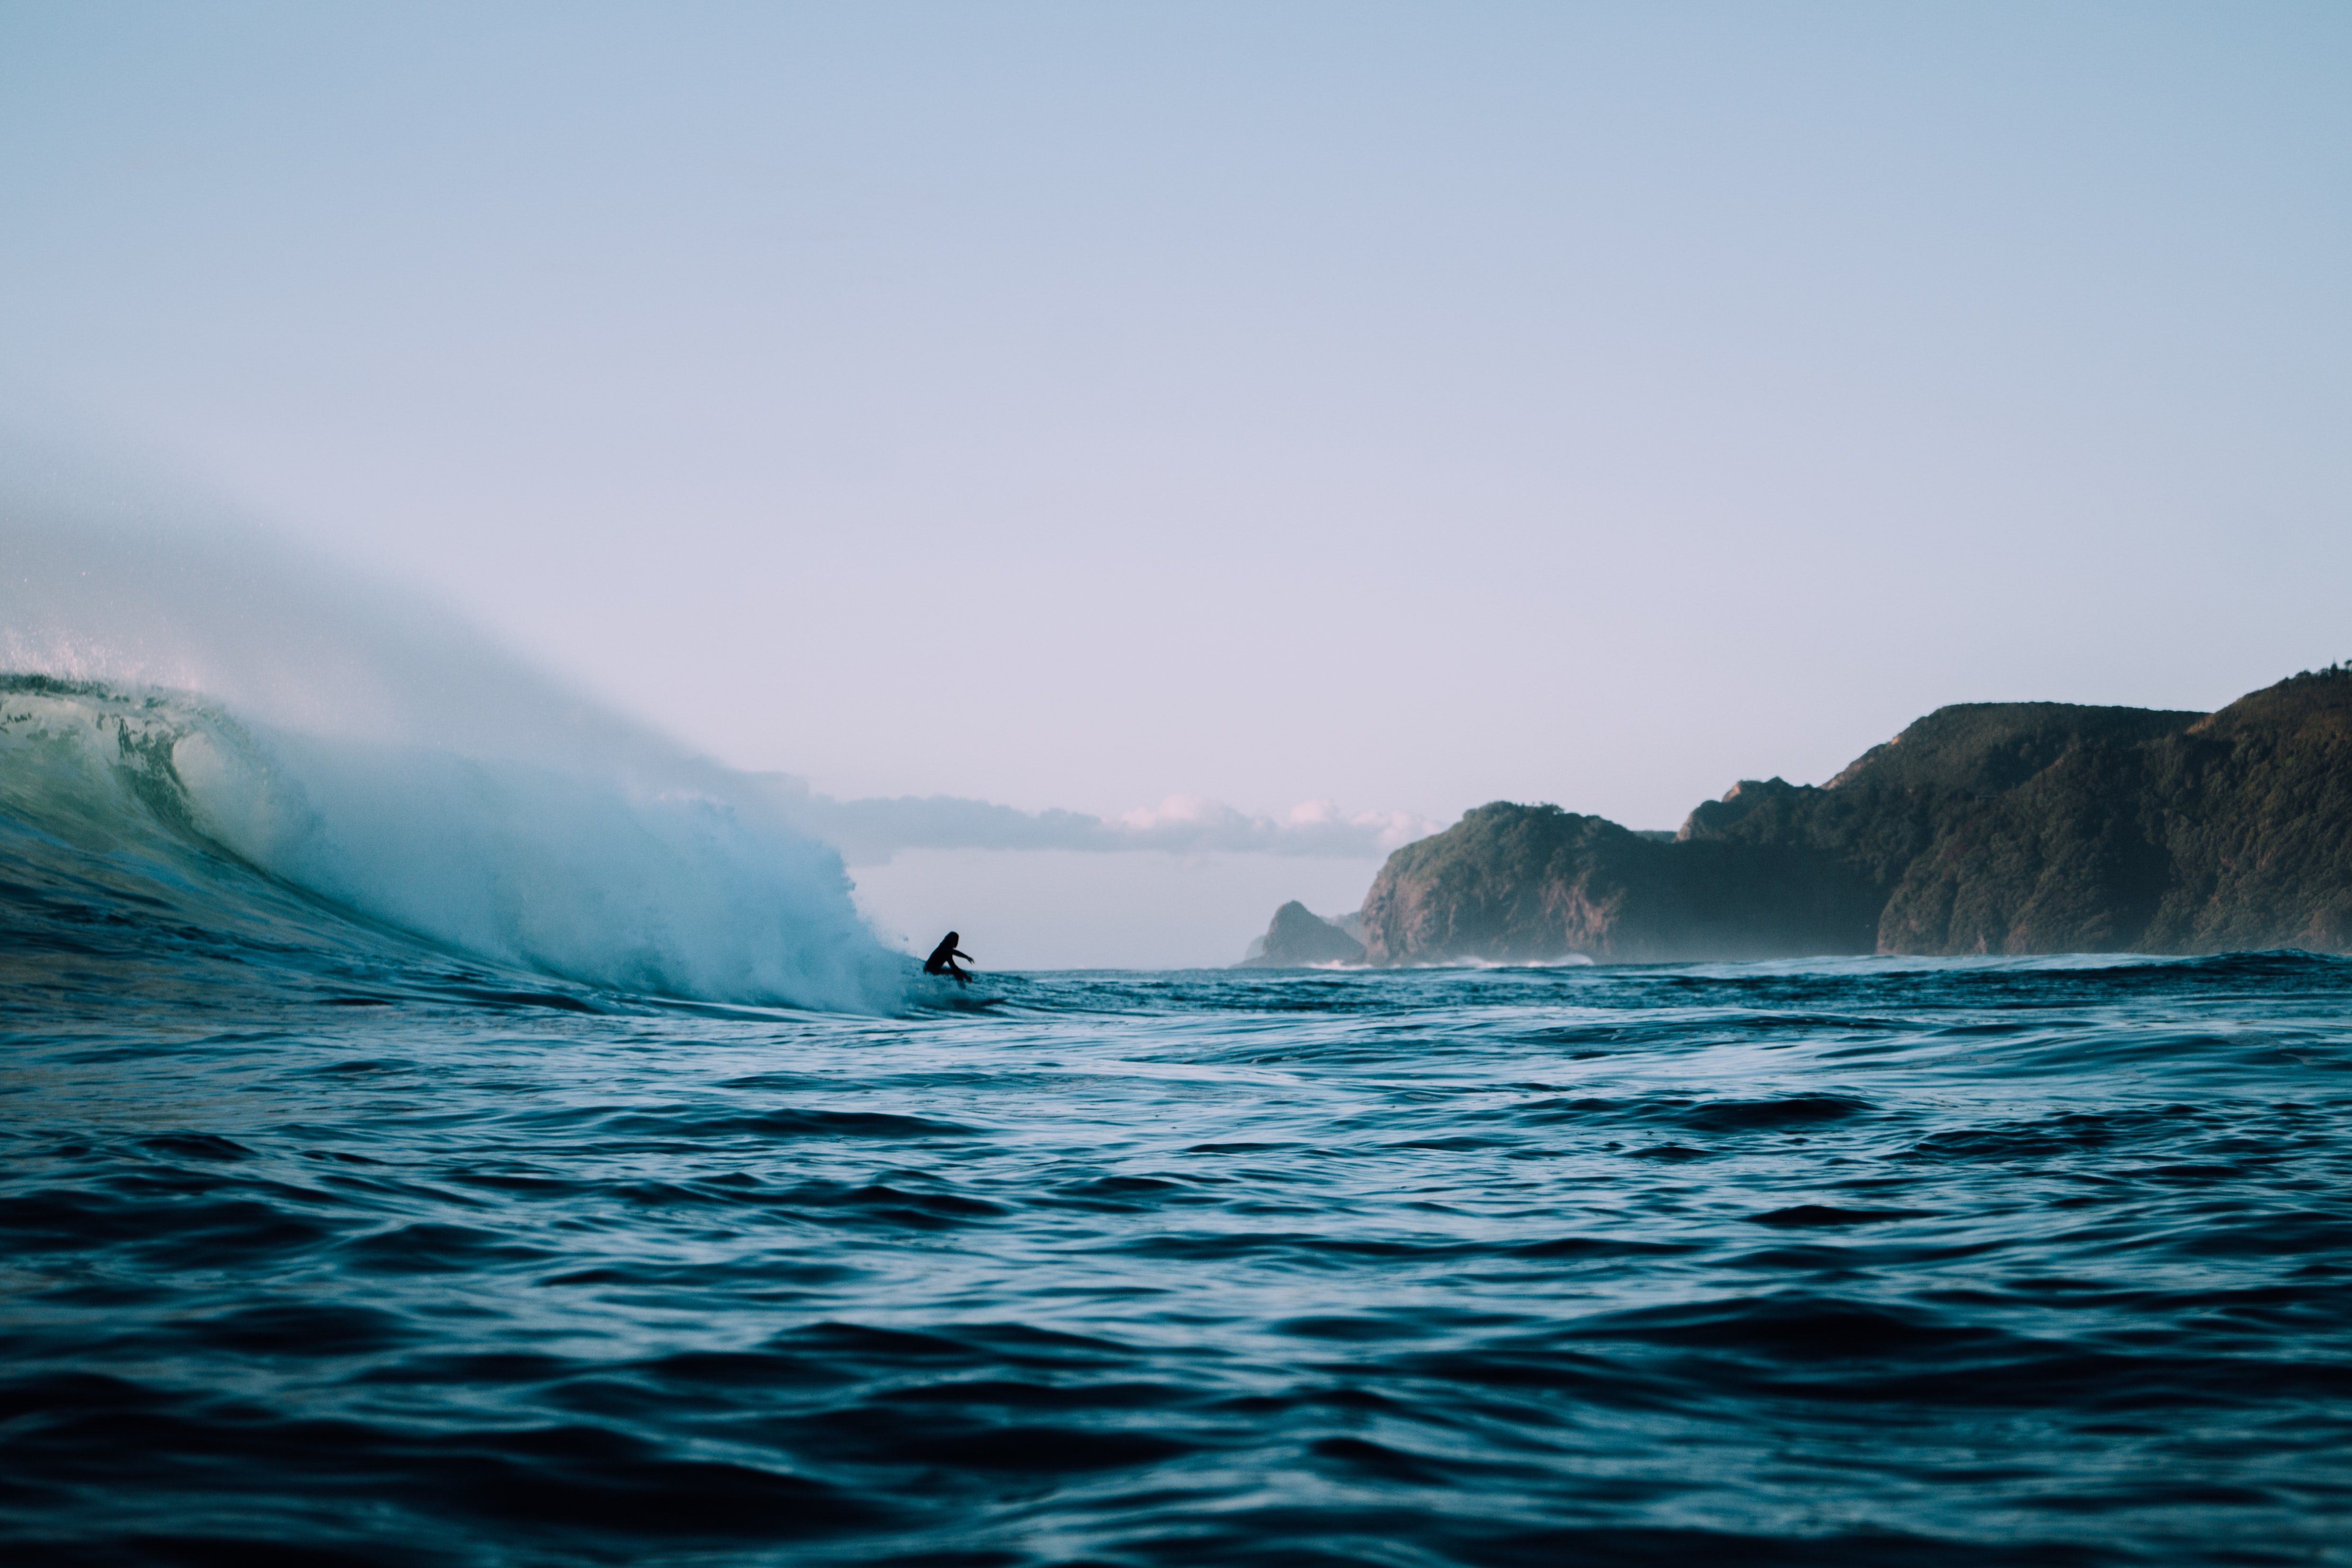 Surfer surfing on the ocean wave at Piha Beach